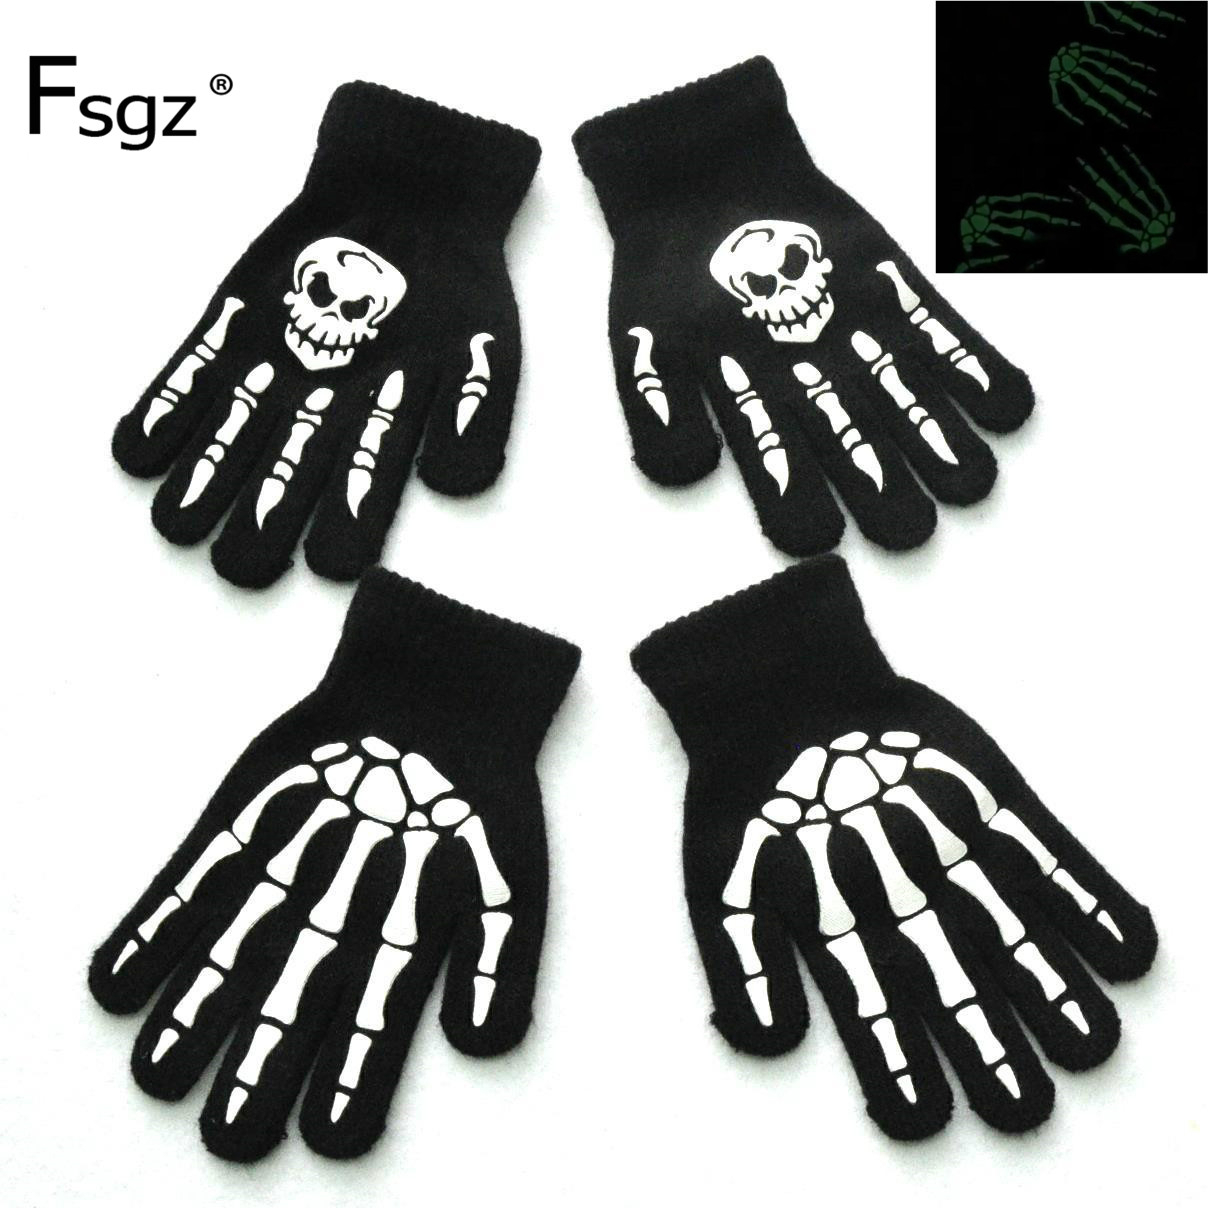 Knitting Gloves For Children 5-12 Years Old Light In The Dark Luminous Human Skeleton Head Ghostcrawler Print Fingers Gloves New